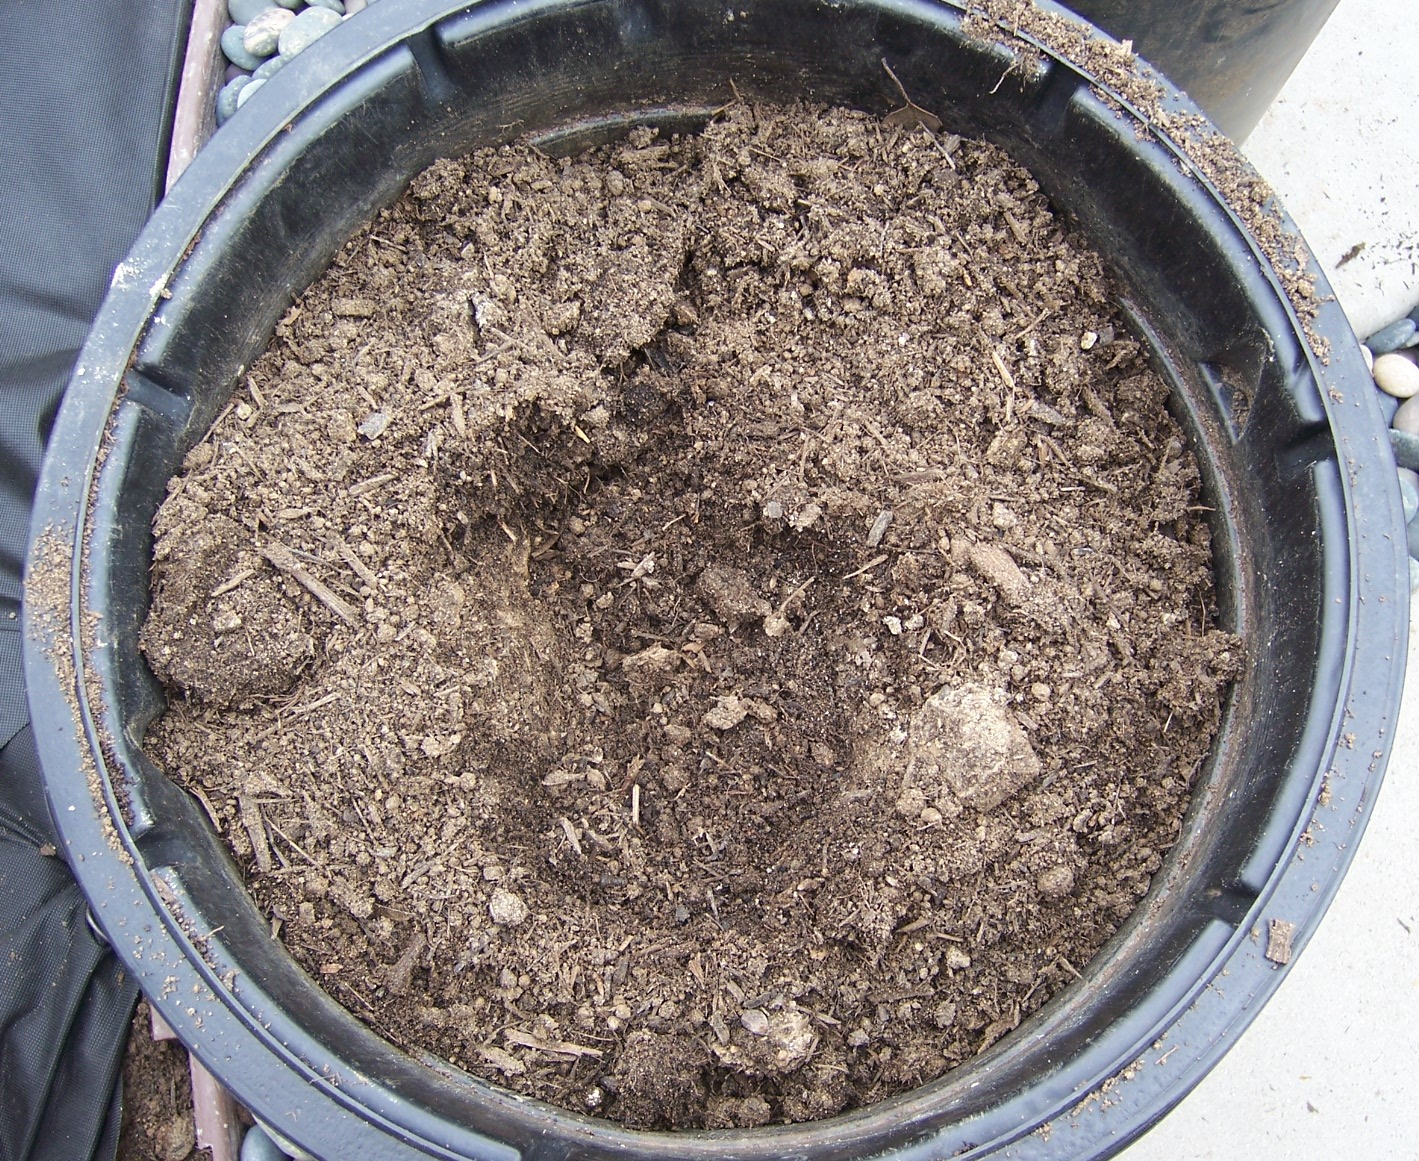 The 2 minute gardener photo good soil vs clay soil for Topsoil vs potting soil